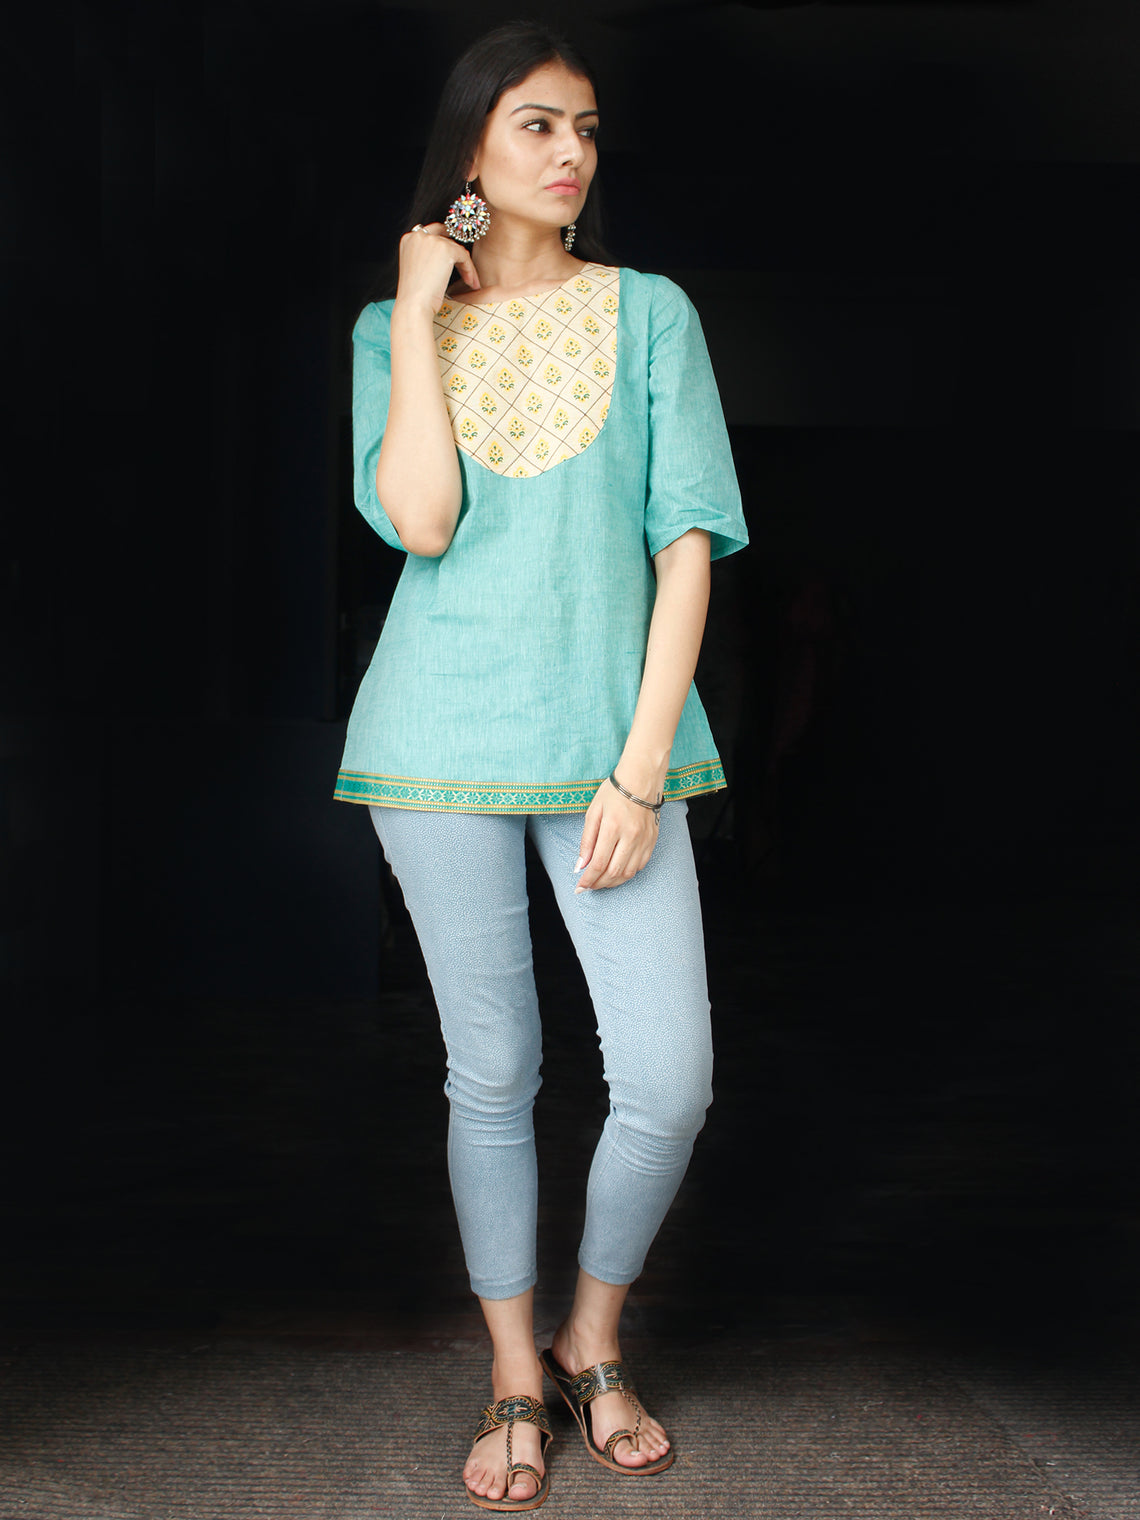 Sea Green South Handloom Cotton Top With  Zari Border - T44FXXX